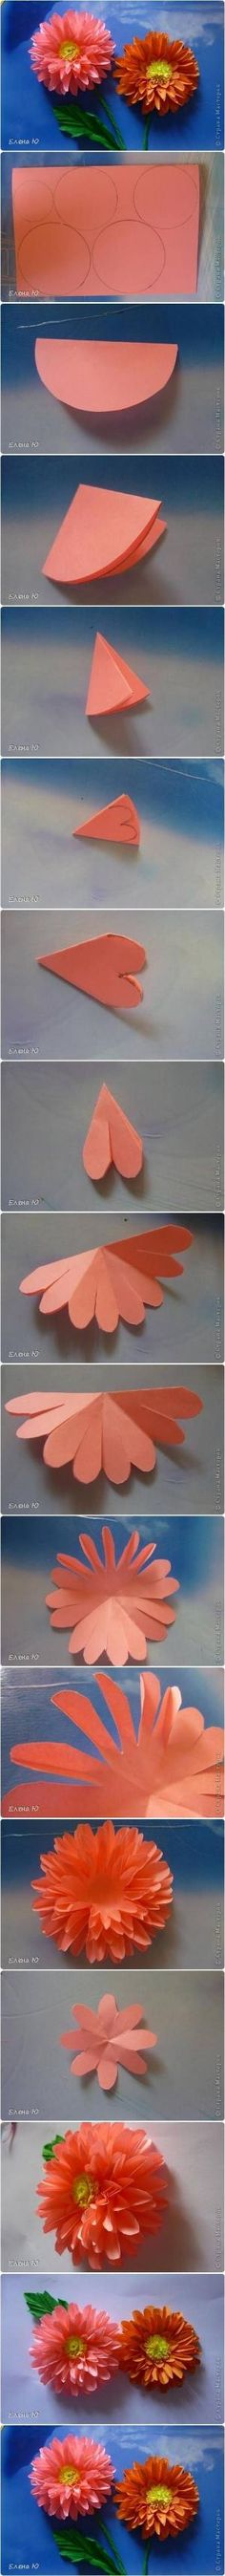 How to Make Paper Dahlias #craft #paper #flower by oldrose